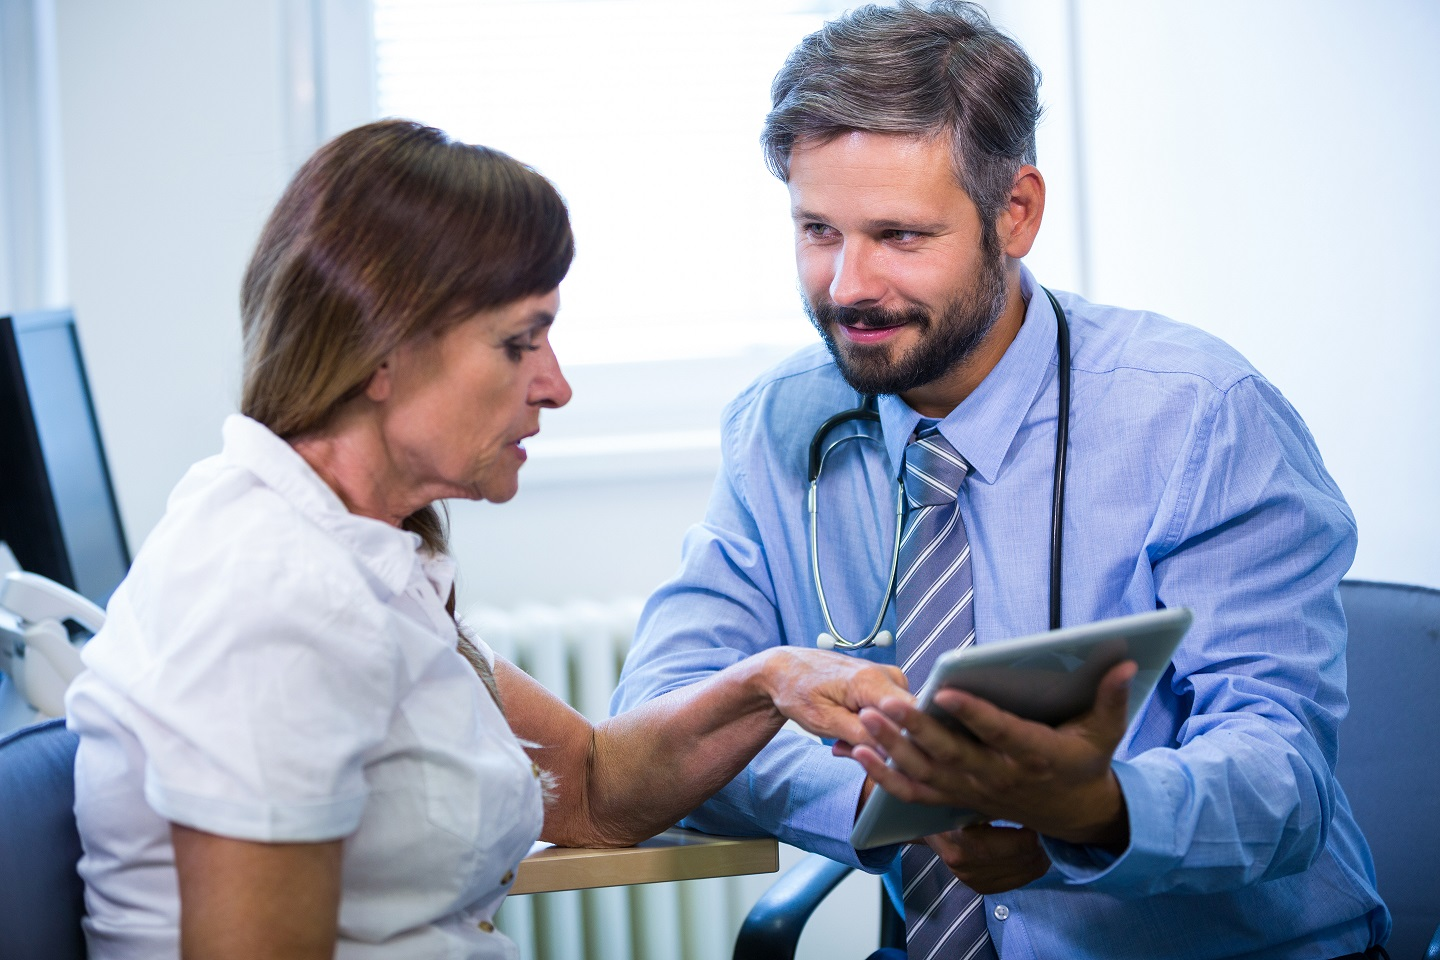 Male doctor discussing with patient over digital tablet at the hospital